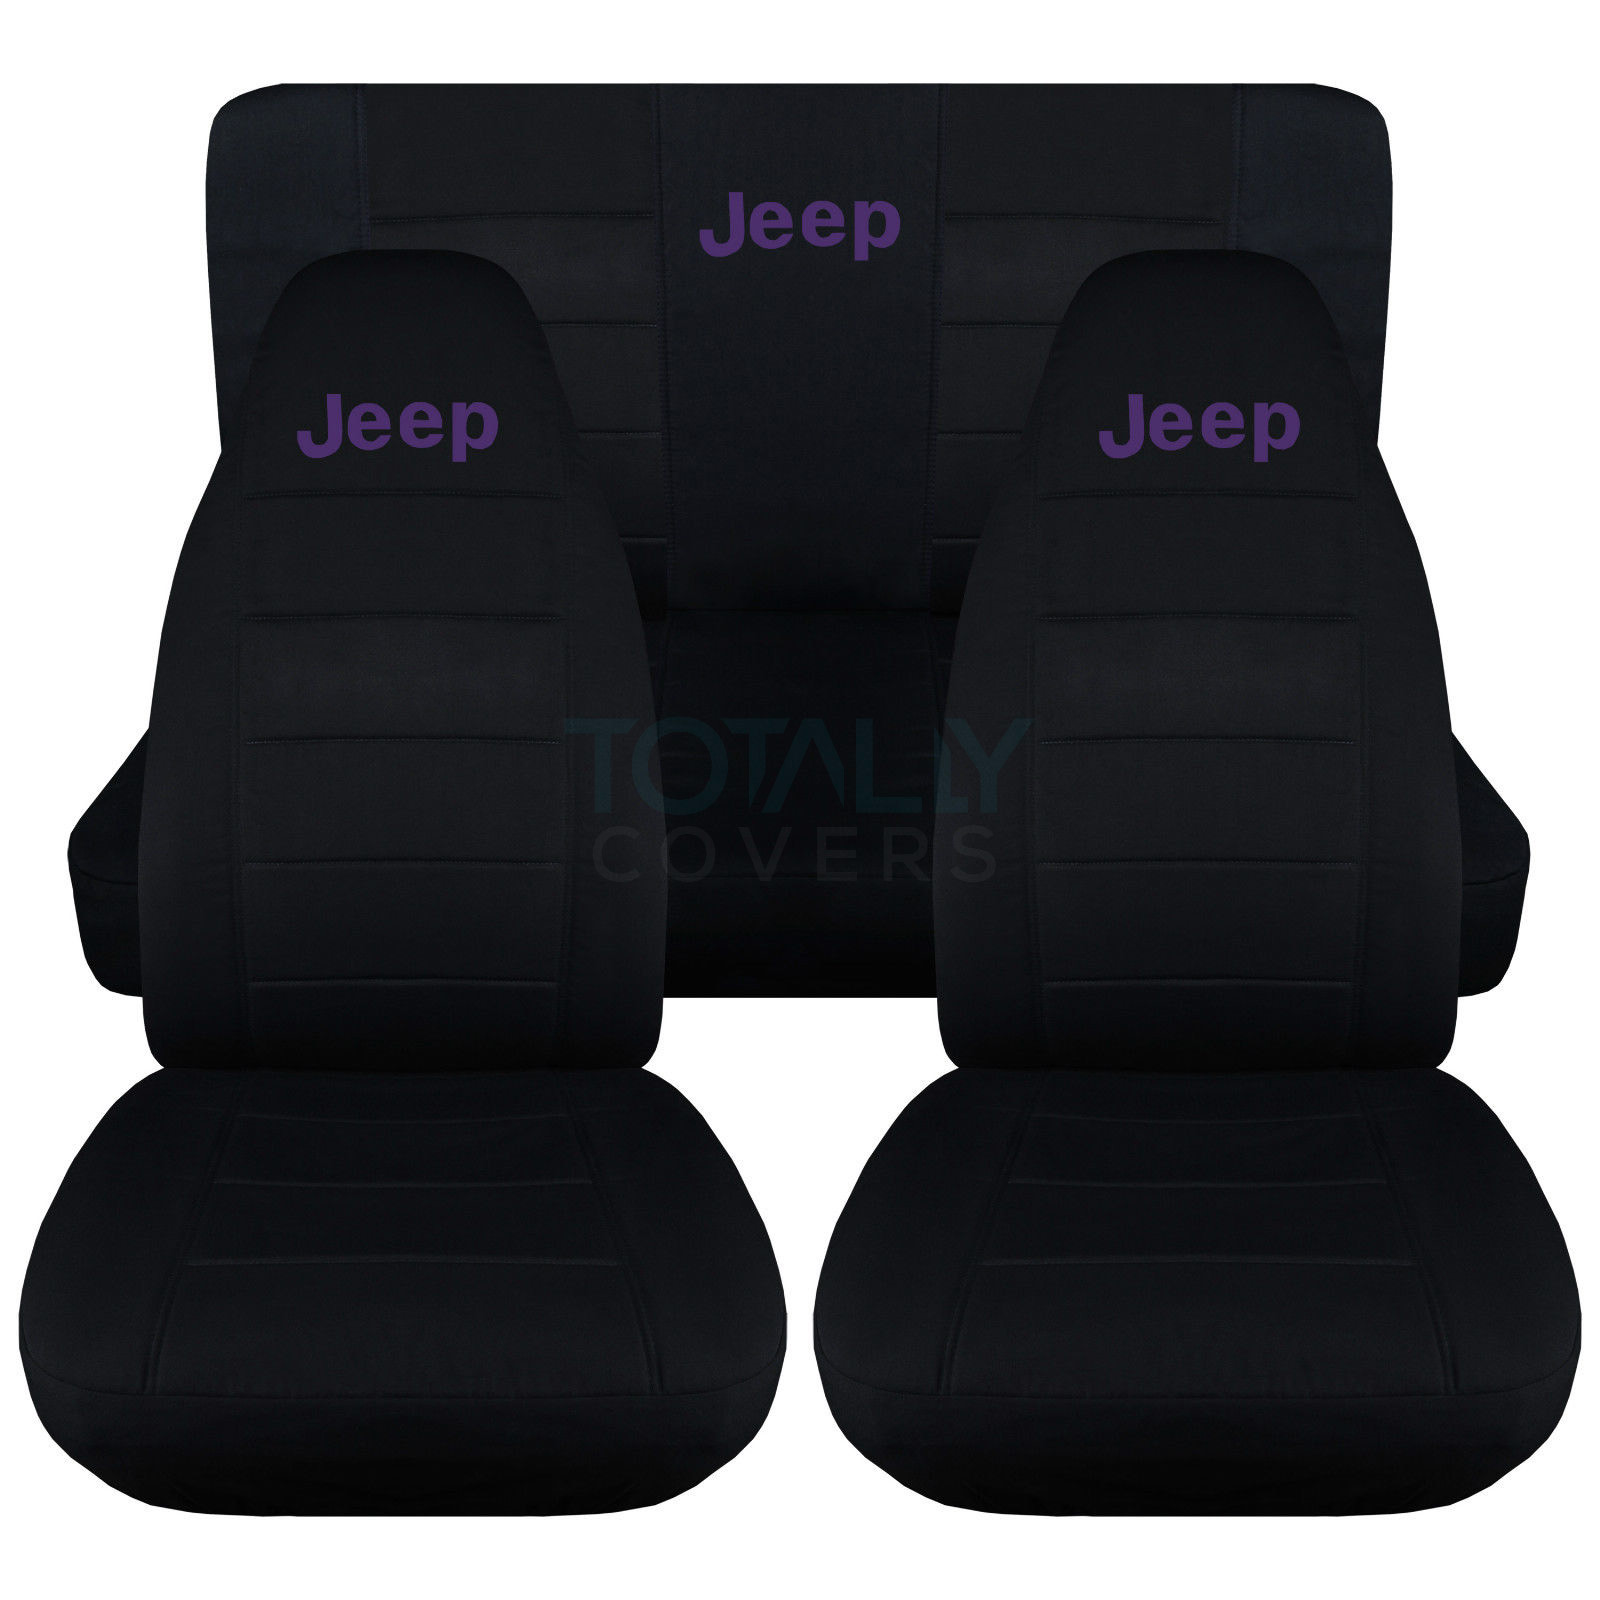 Jeep Wrangler Yj Tj Jk 1987 2017 Black Seat Covers W Logo